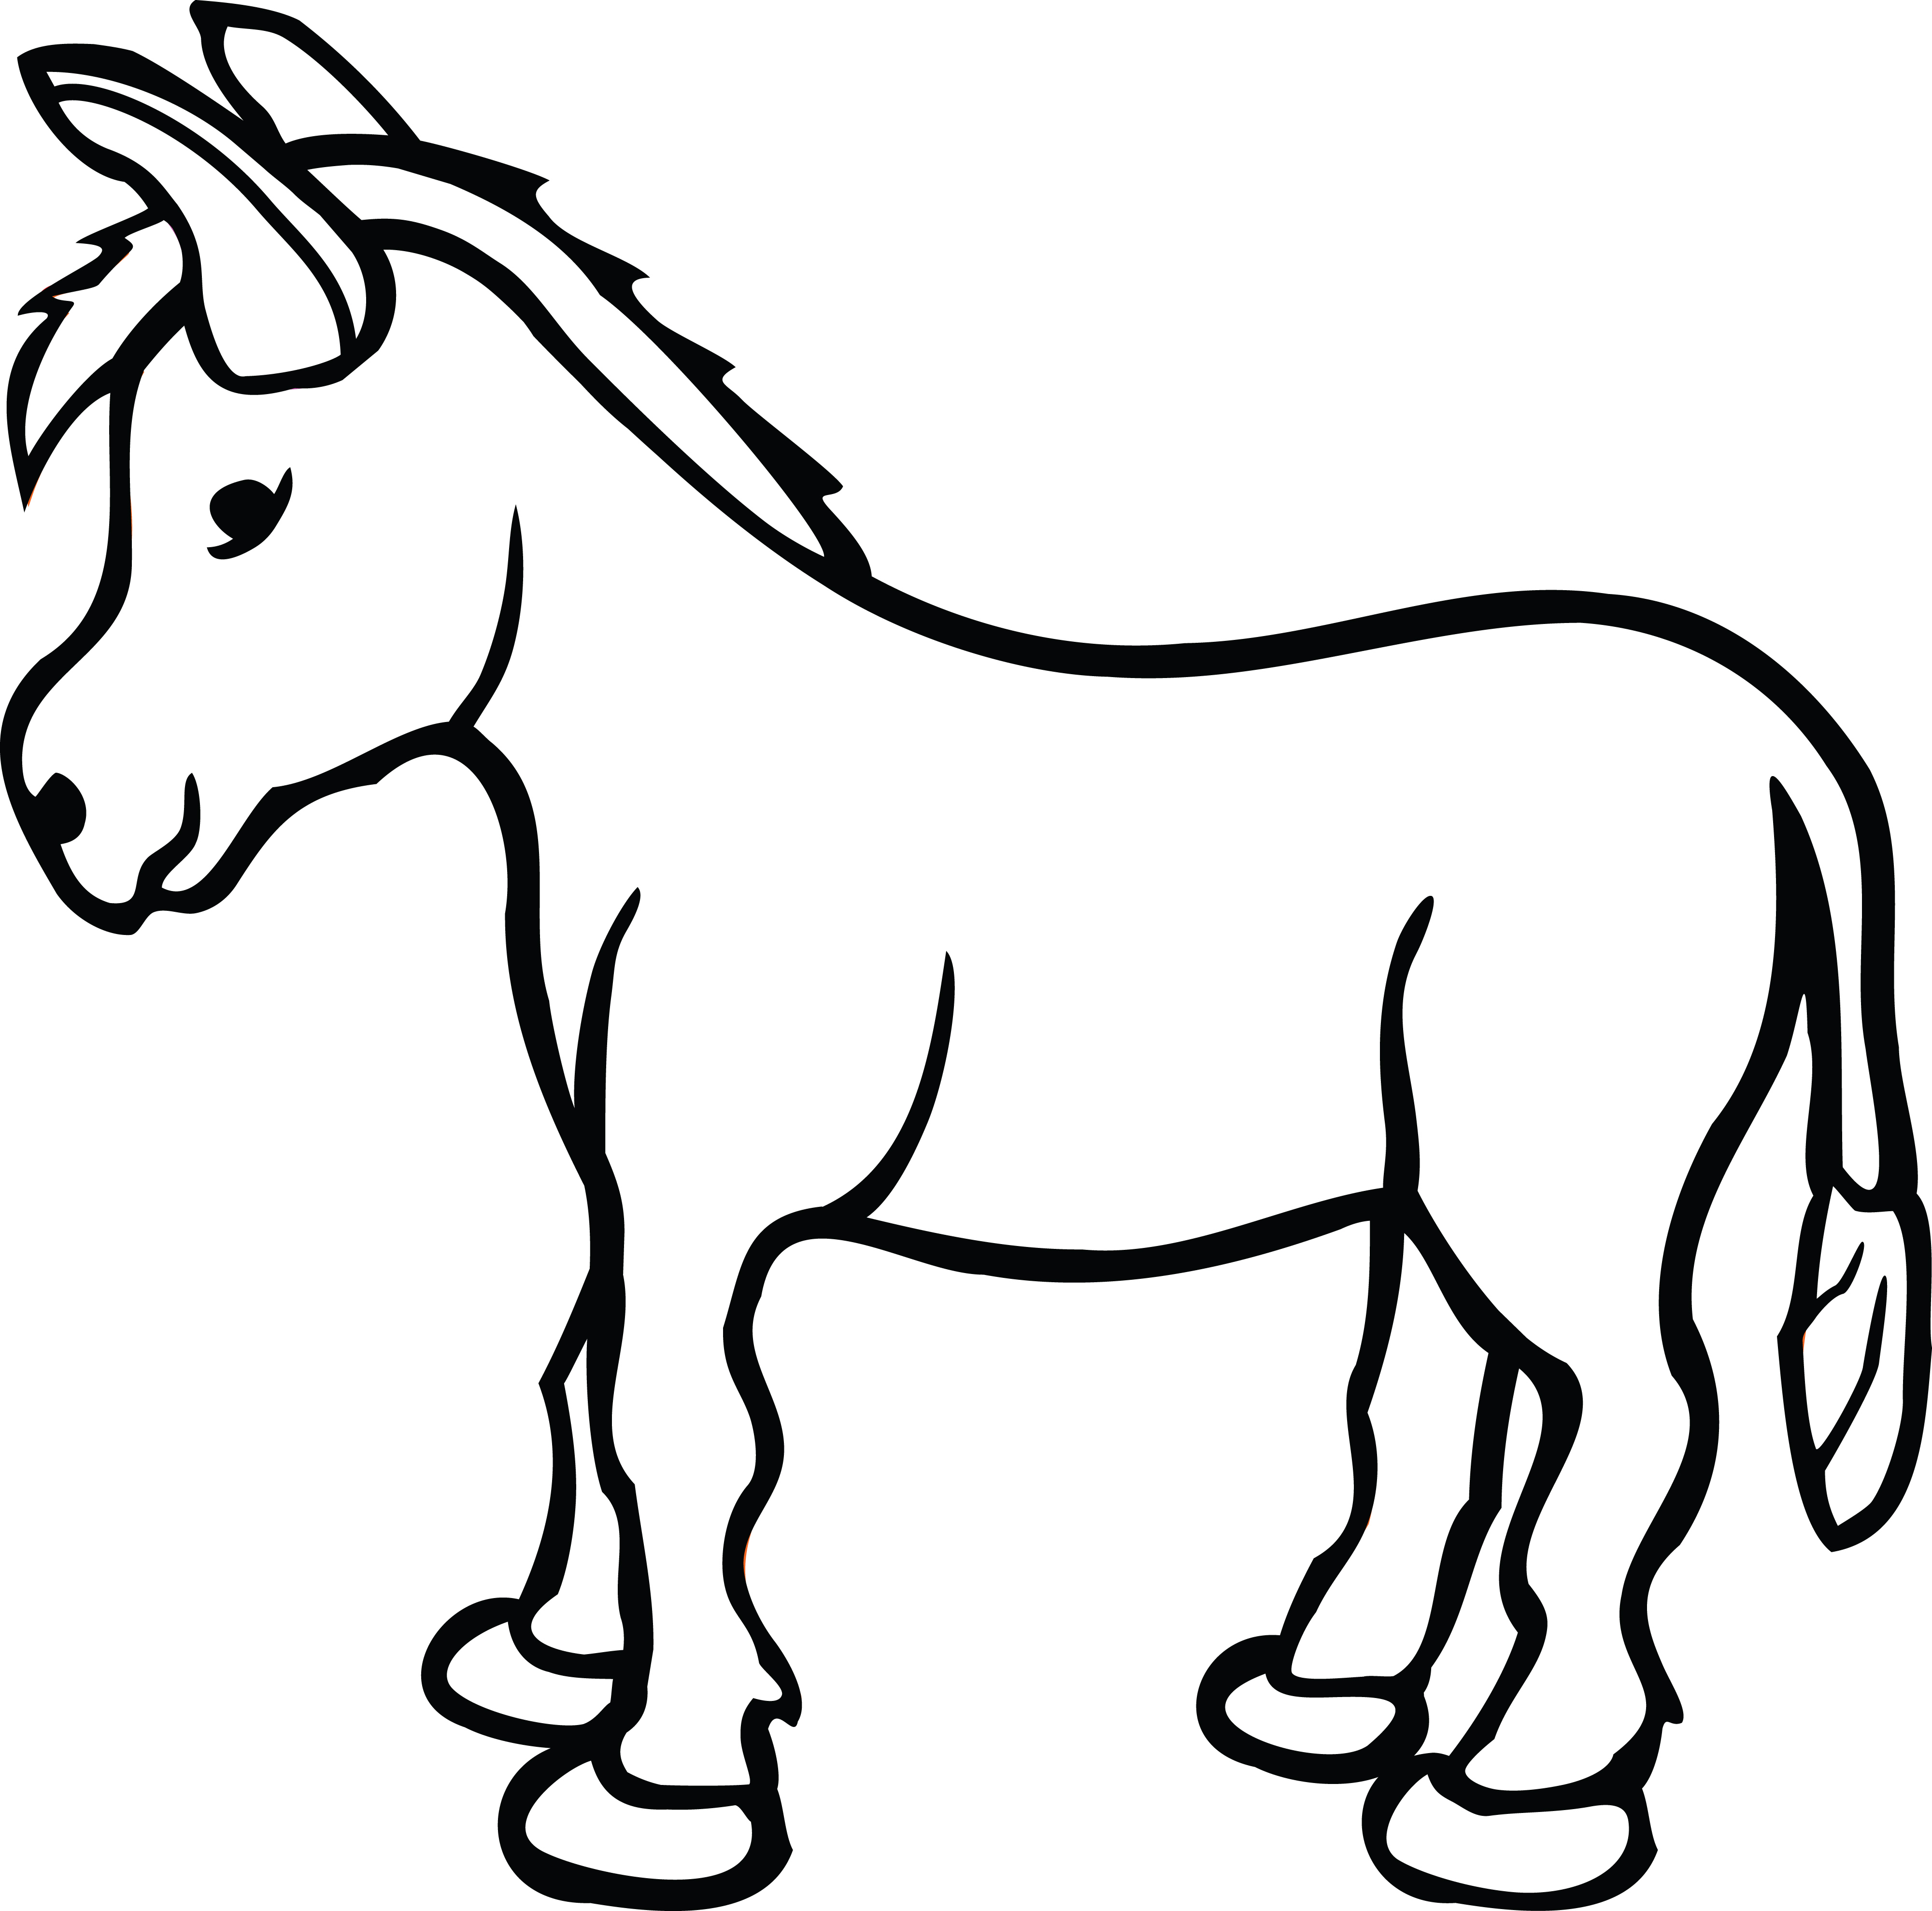 Donkey clipart line. Free of a